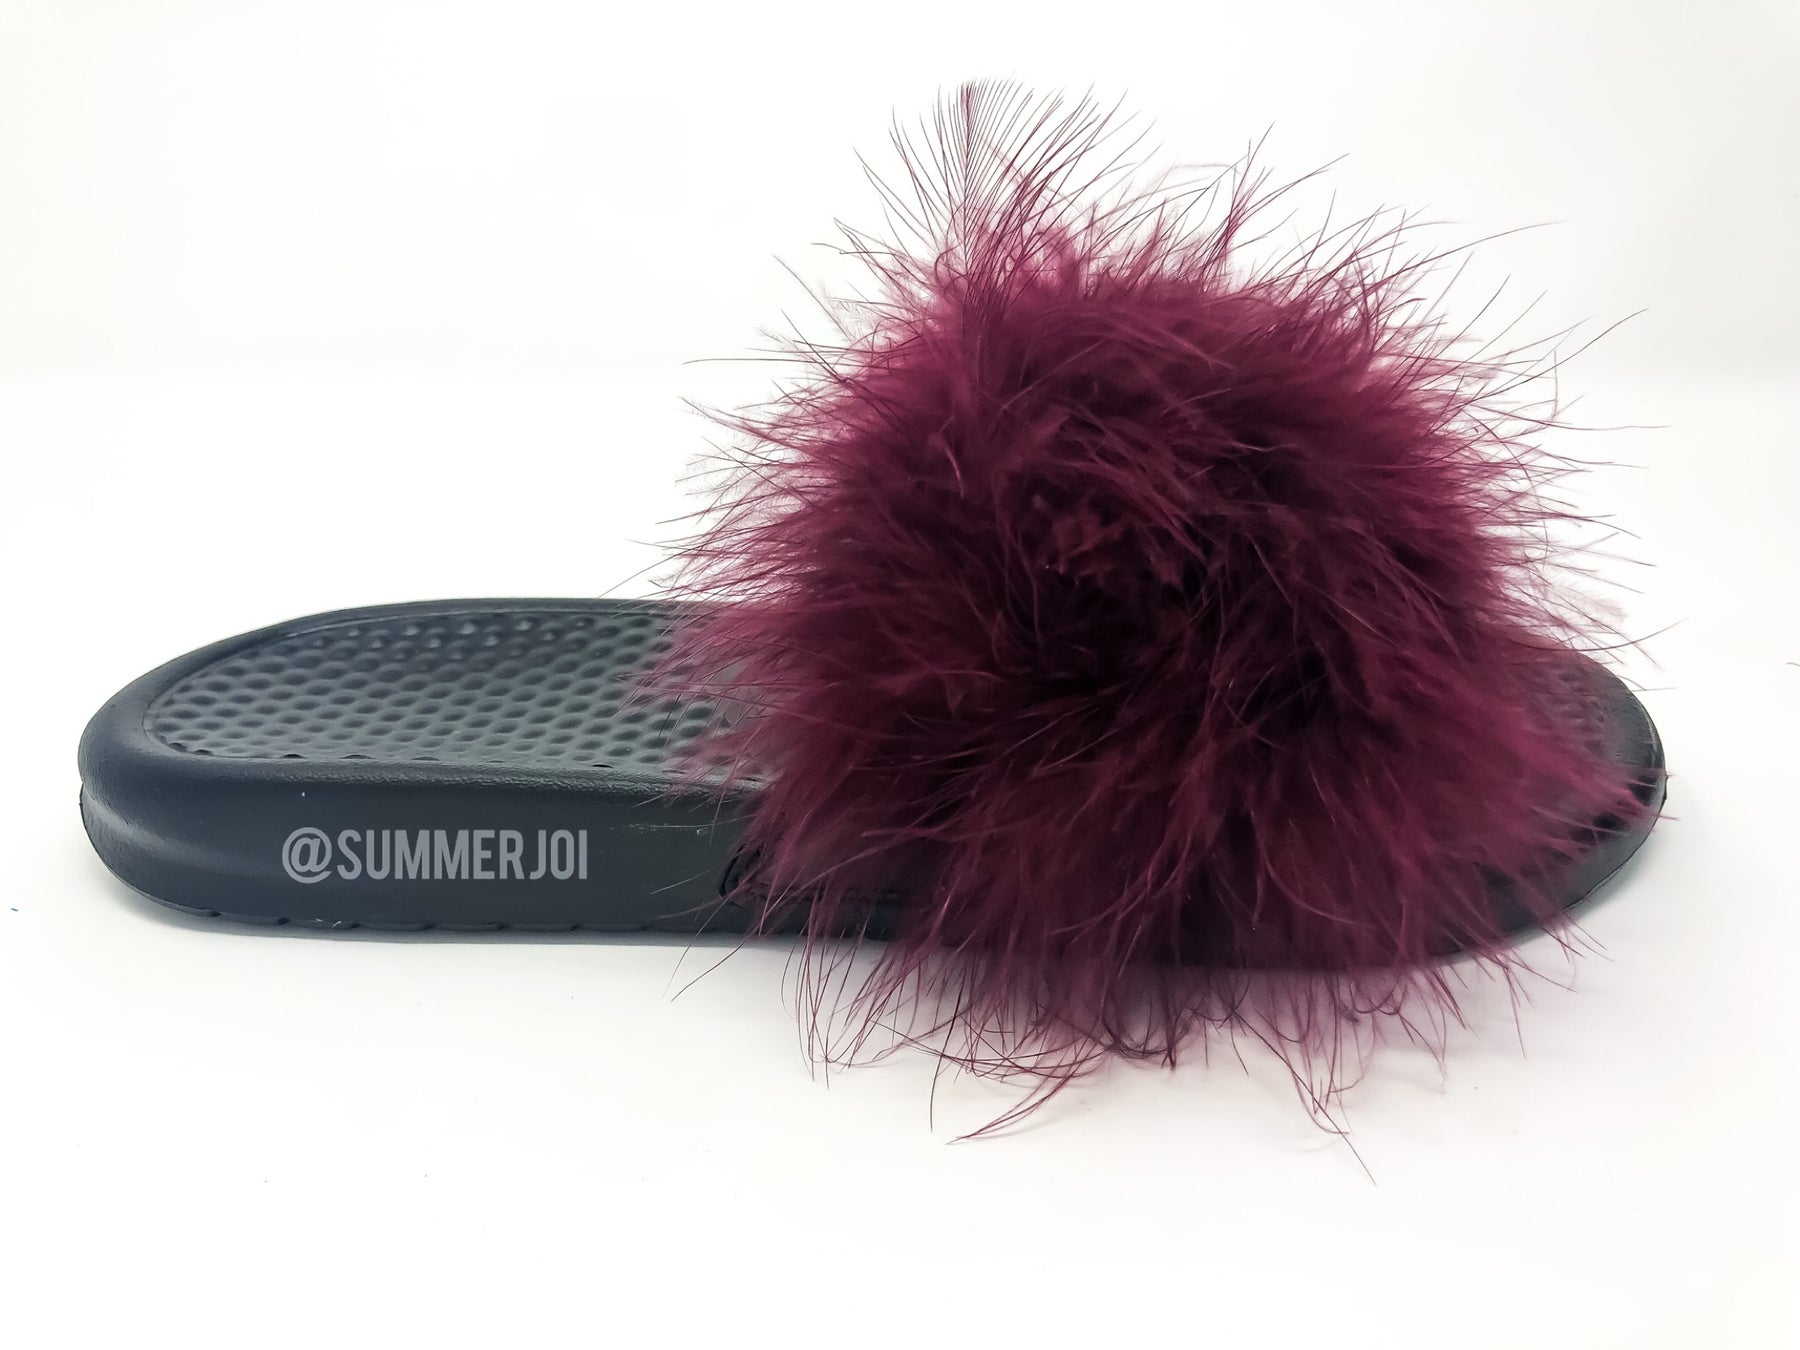 c438ad697b28f5 ... Image of Burgundy Faux Fur Nike Slides by Summer Joi